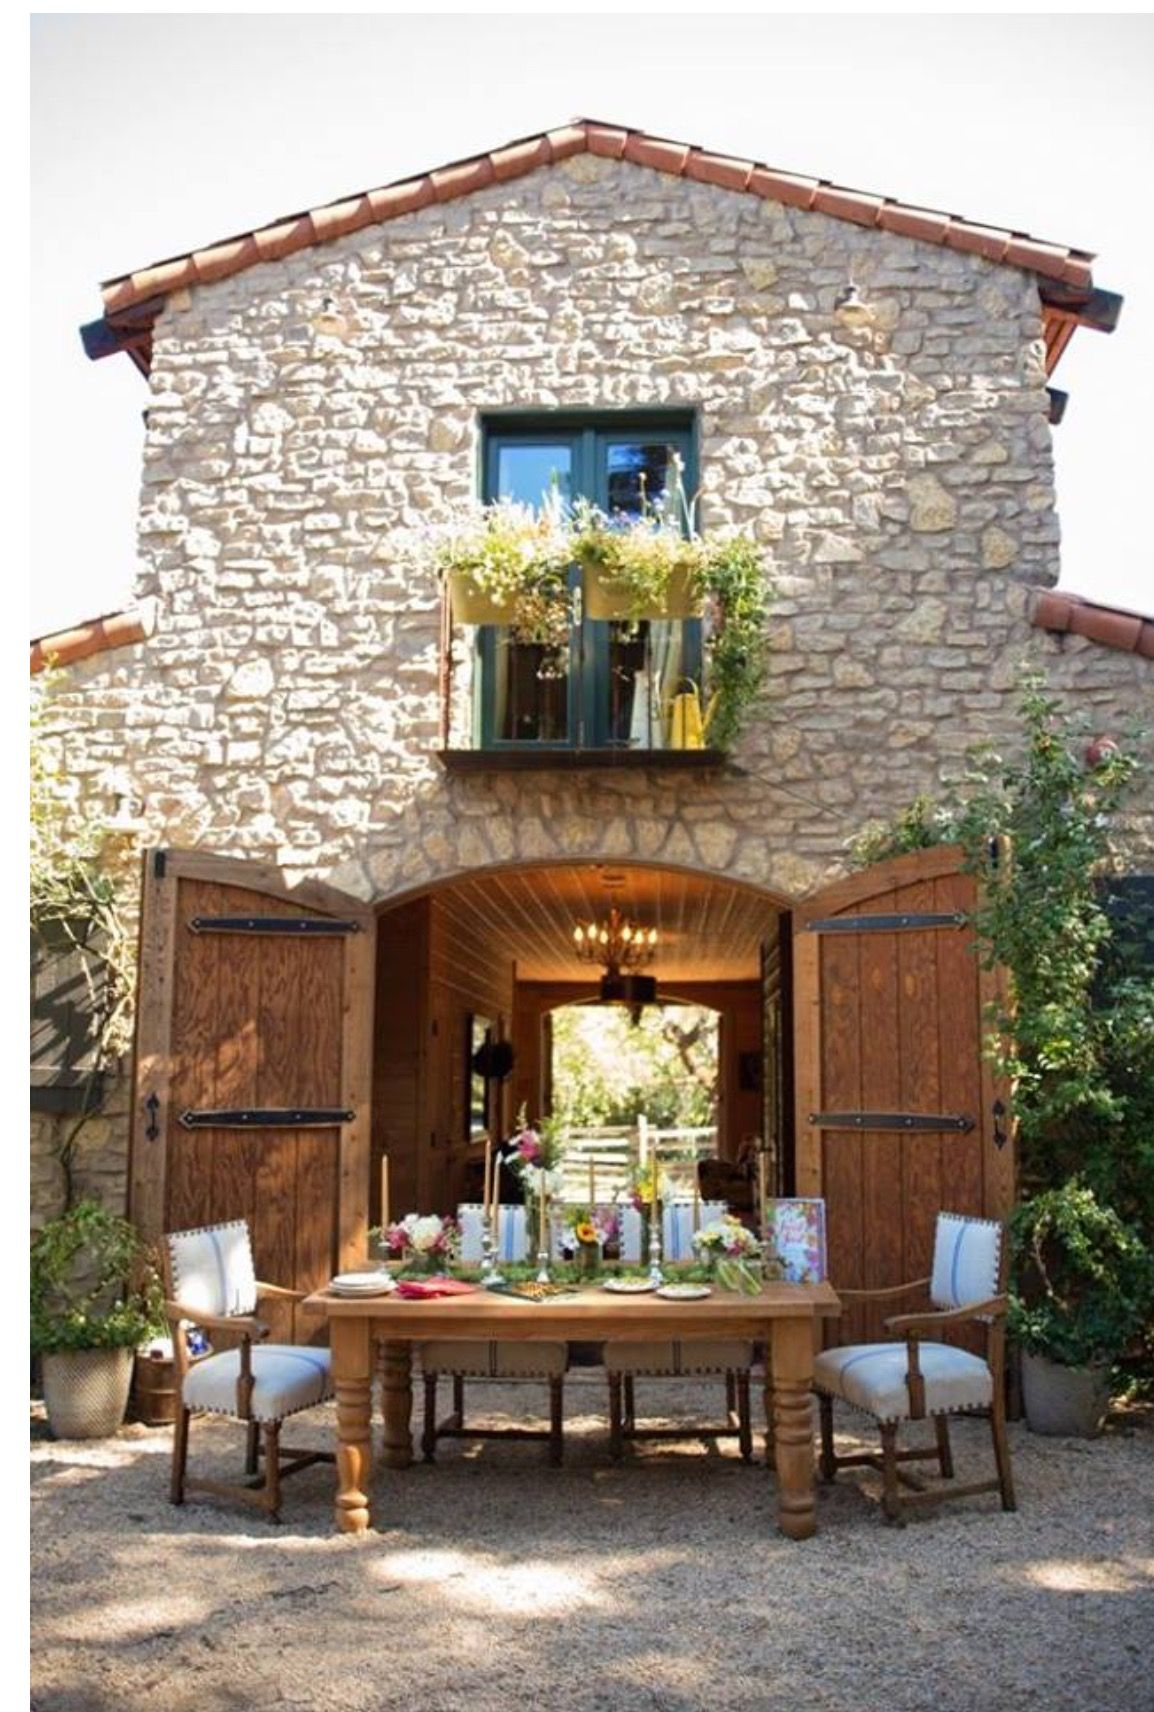 Old Spanish farmhouse love the idea of building an open garage area